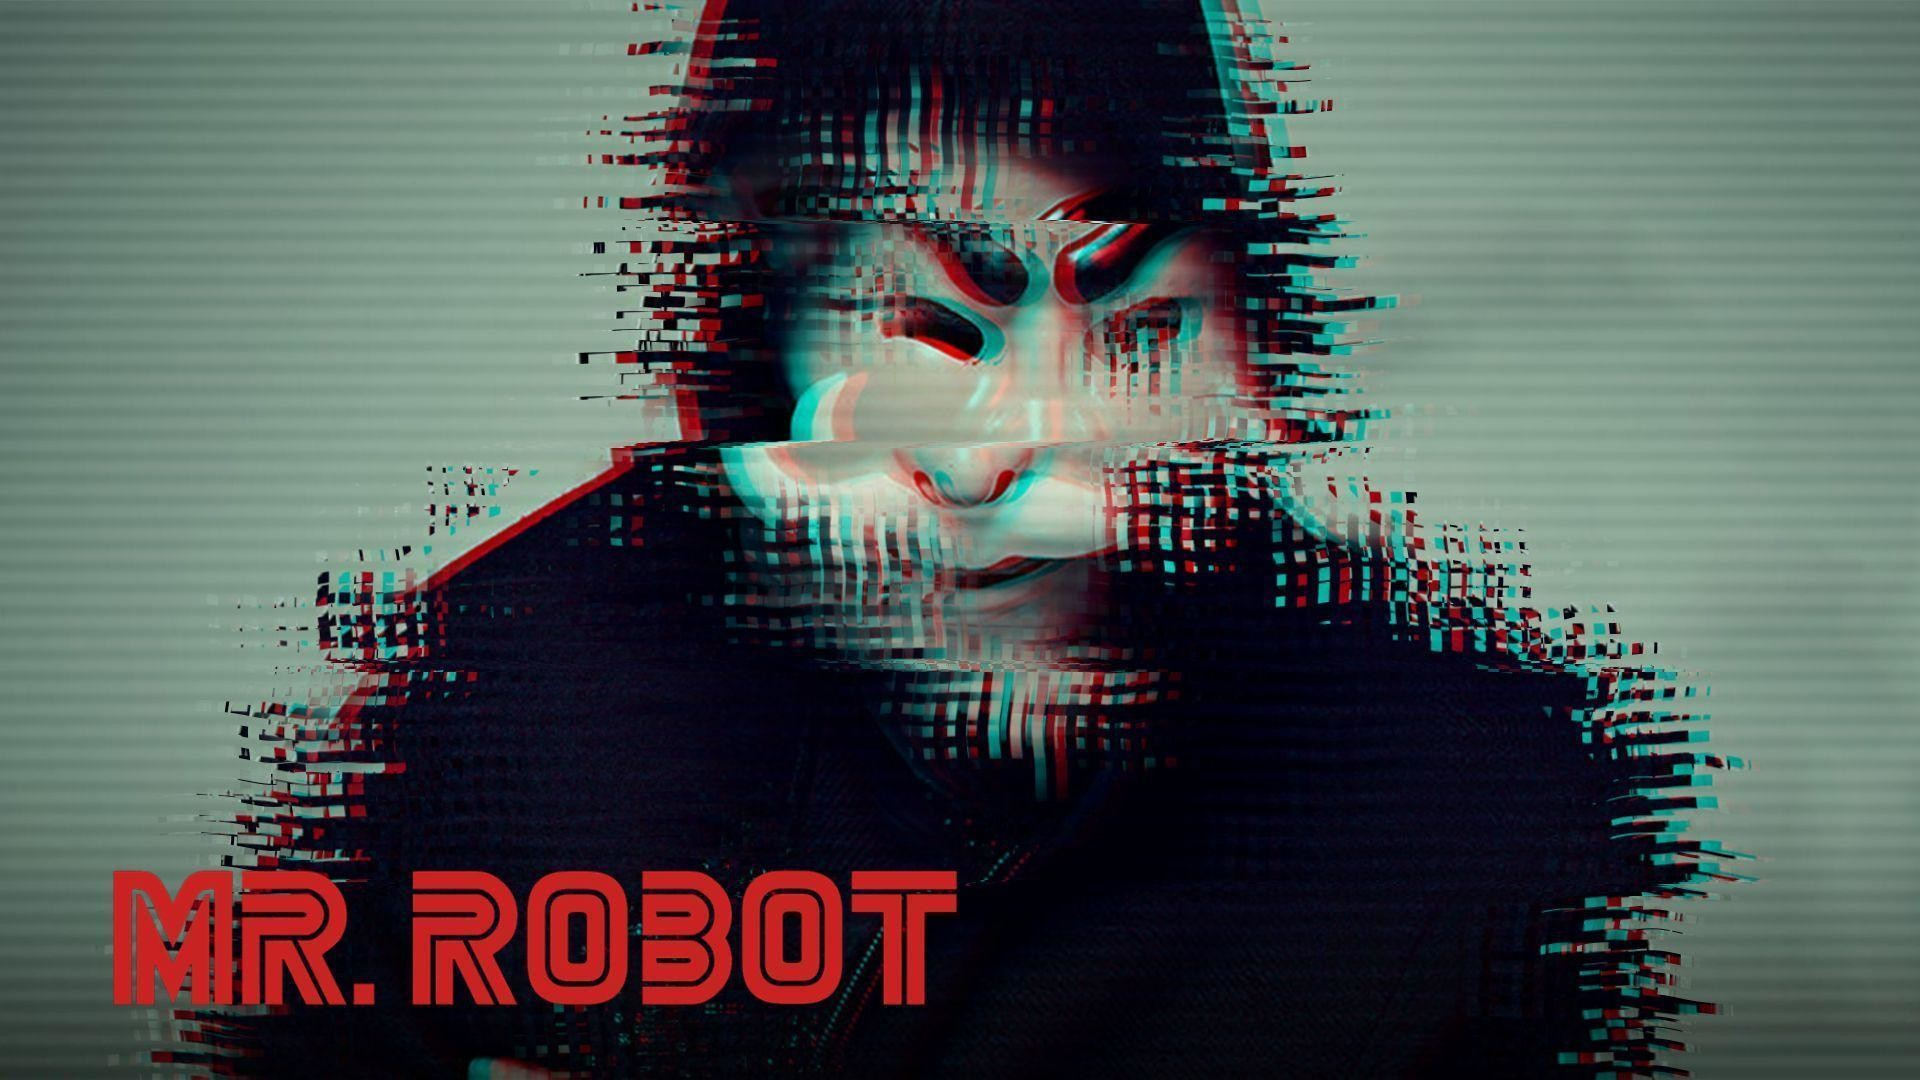 mr robot wallpapers ·①